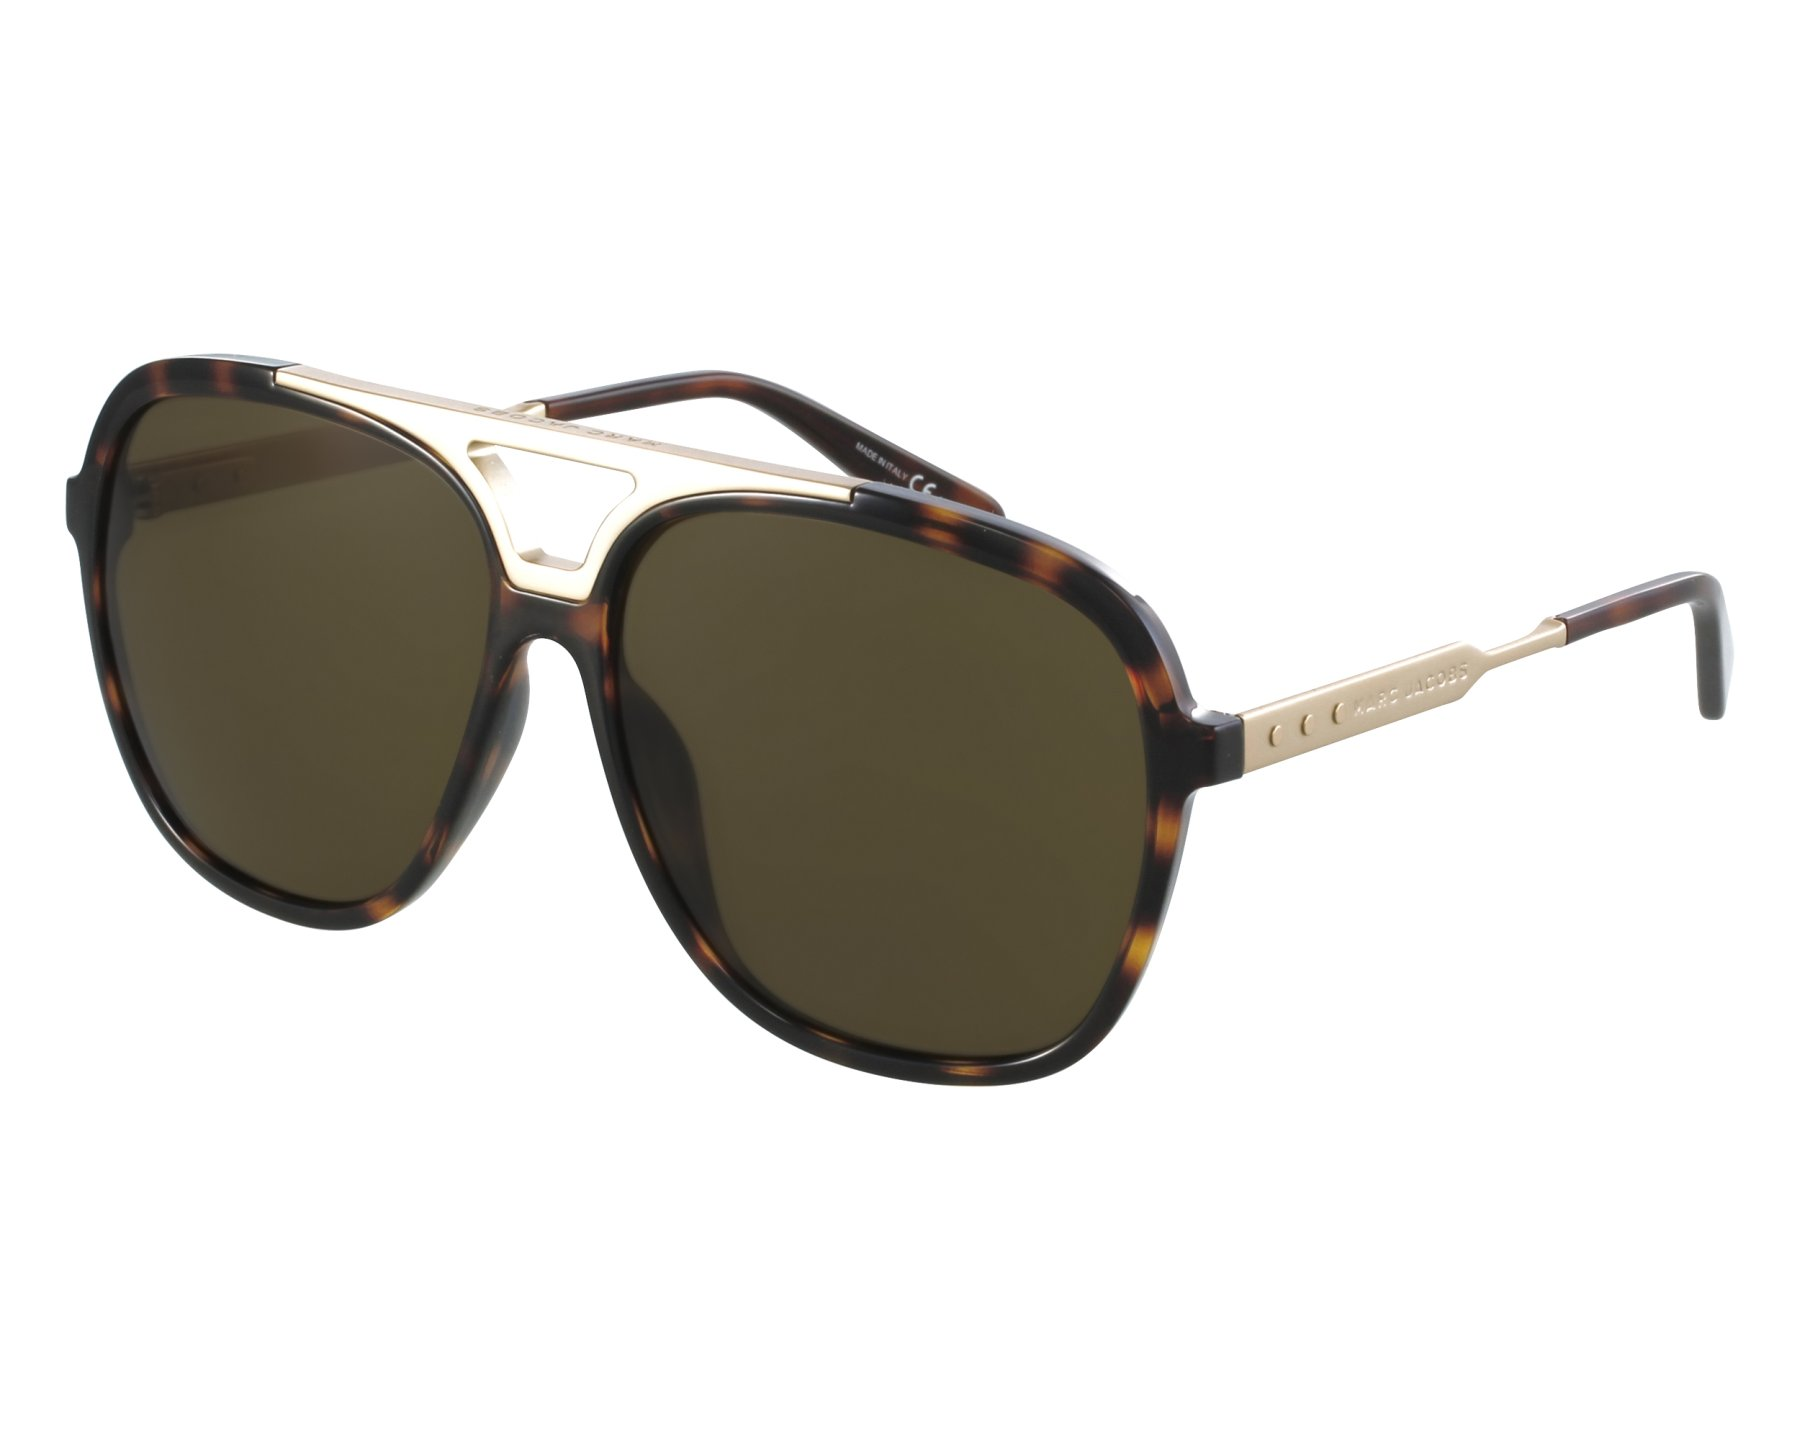 1b21dbf92160 Sunglasses Marc Jacobs MJ-618-S 147 EC 59-14 Havana Gold